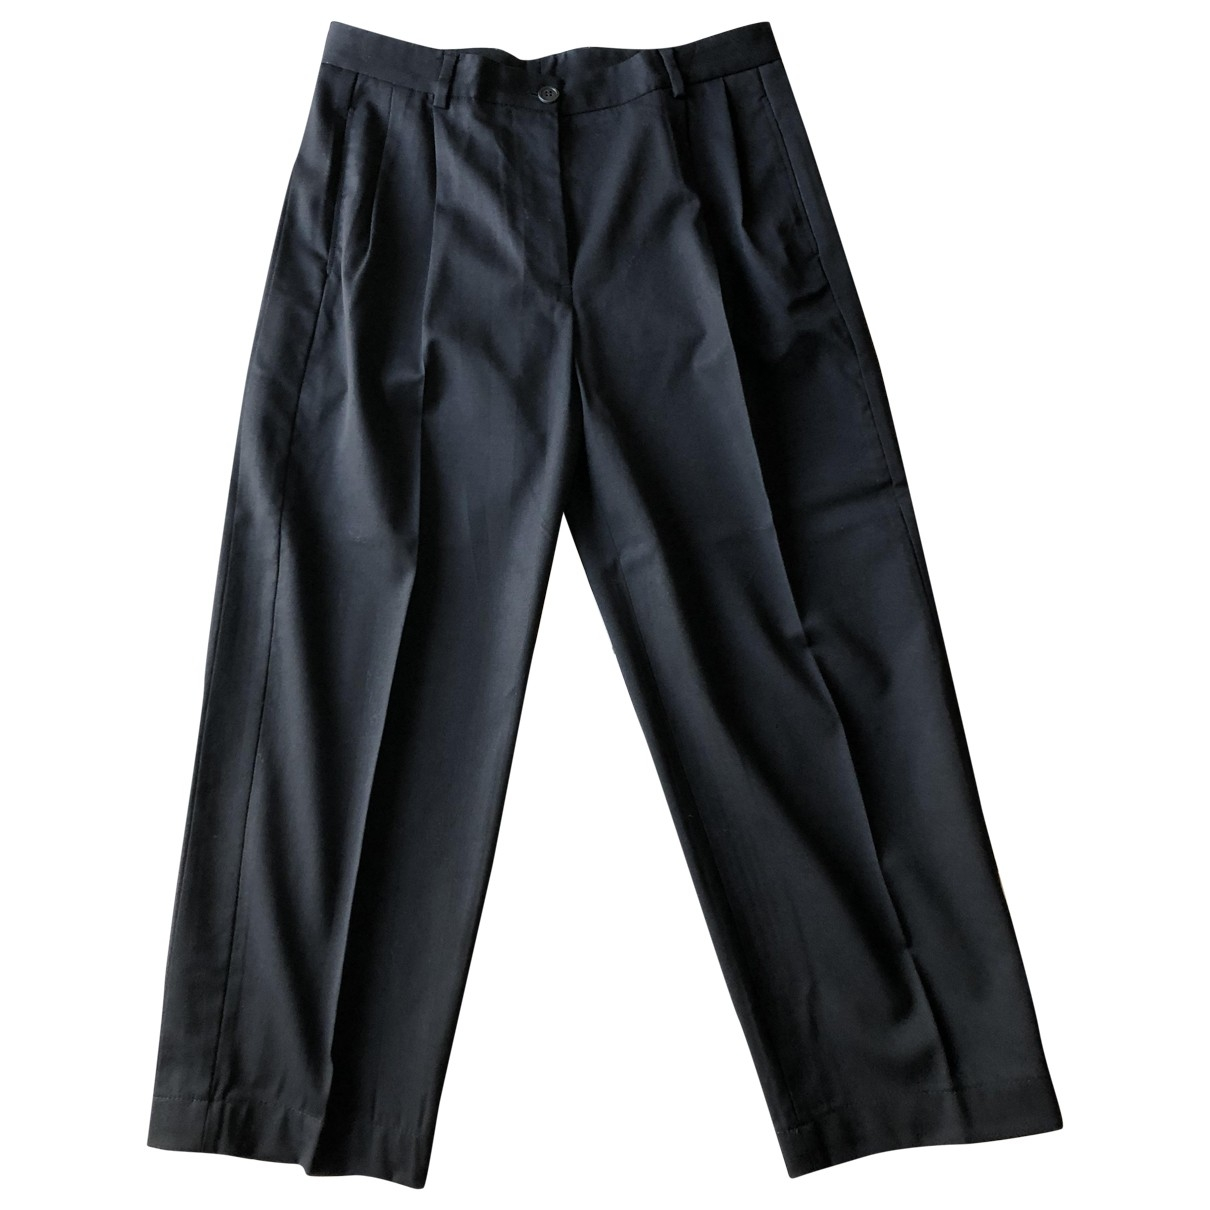 Mauro Grifoni \N Black Wool Trousers for Women 40 IT